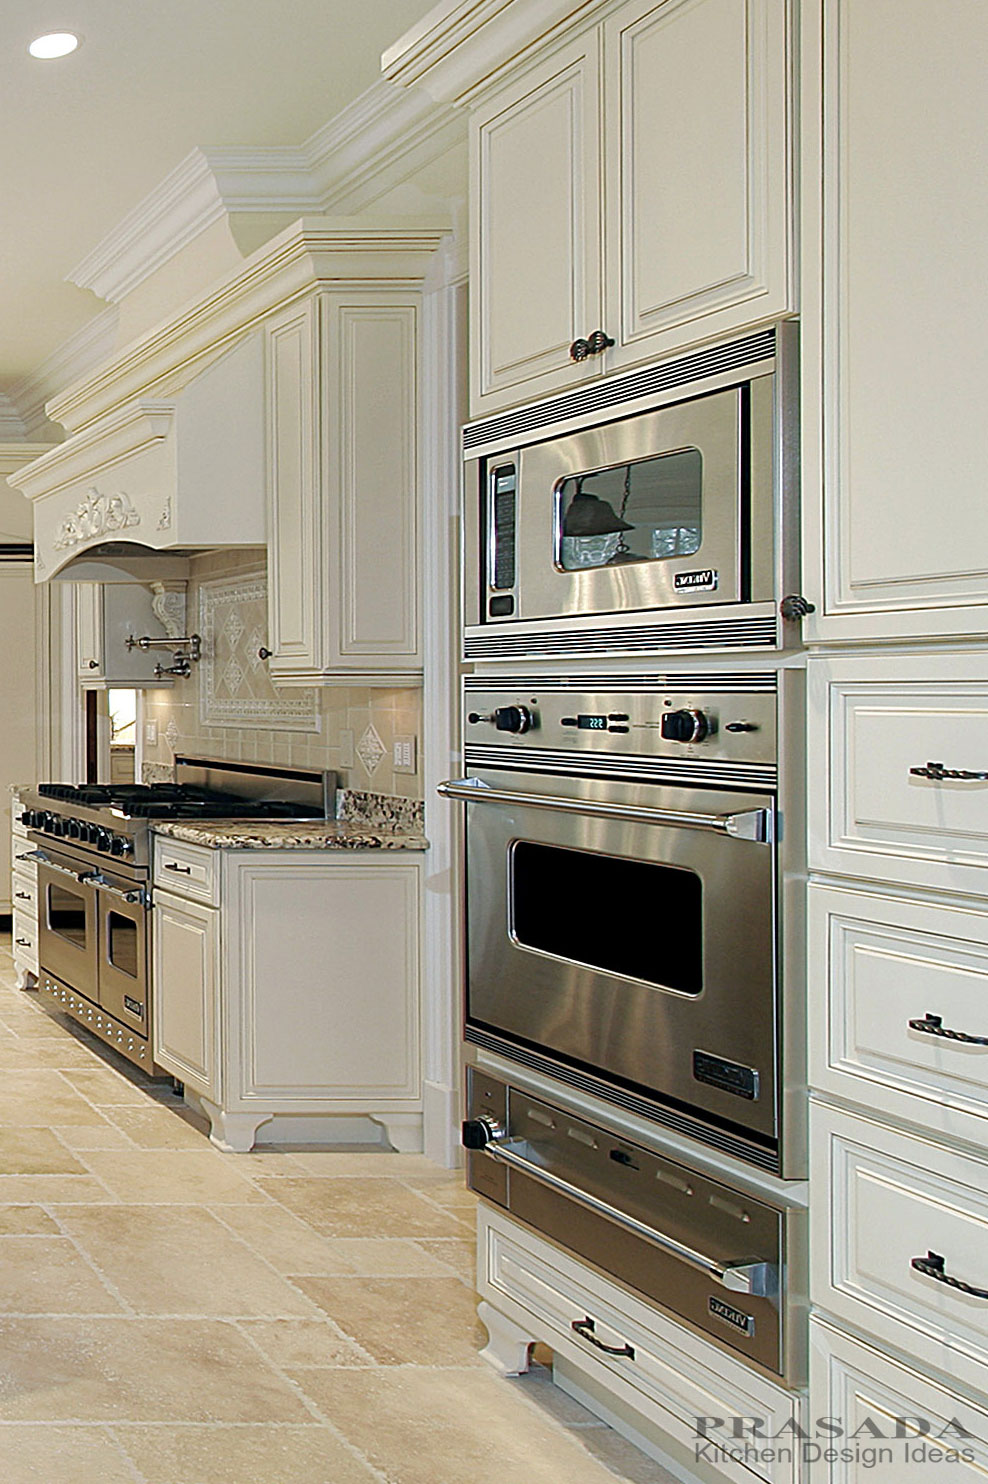 Kitchen Design Ideas Prasada Kitchens And Fine Cabinetry